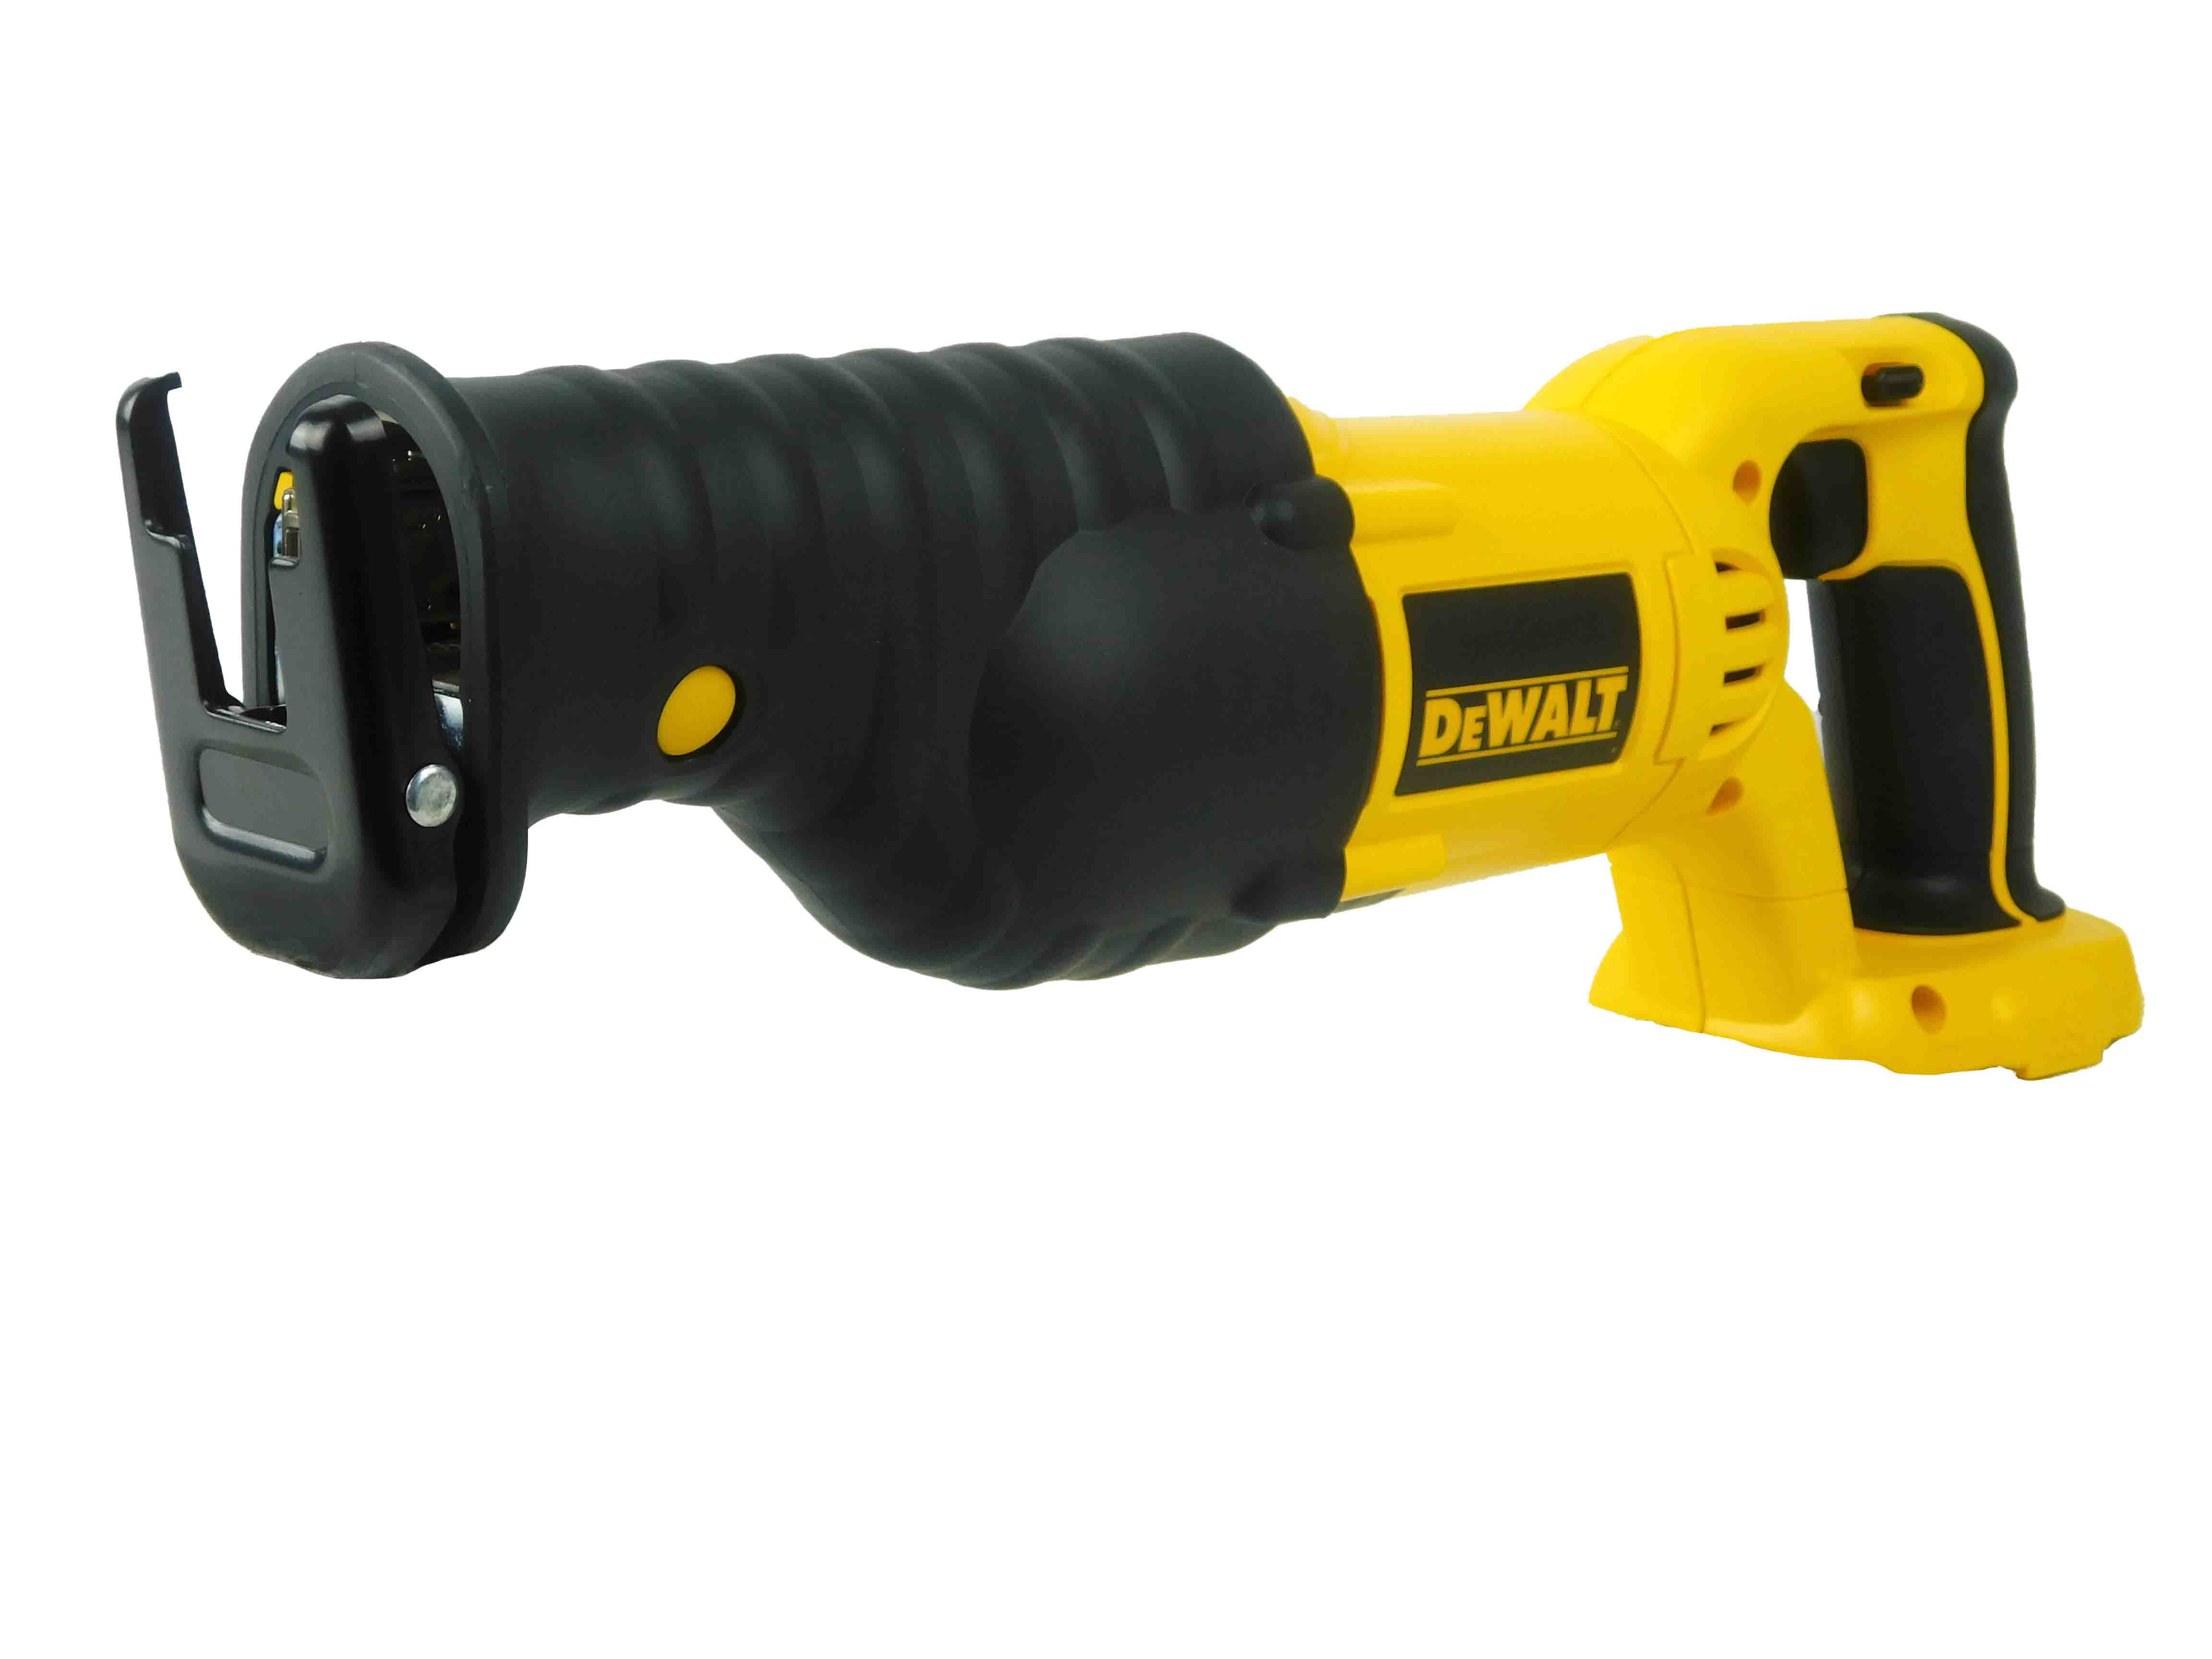 Dewalt-DC385-18V-Reciprocating-Sawzall-Variable-Speed-Cordless-Bare-Tool-image-3